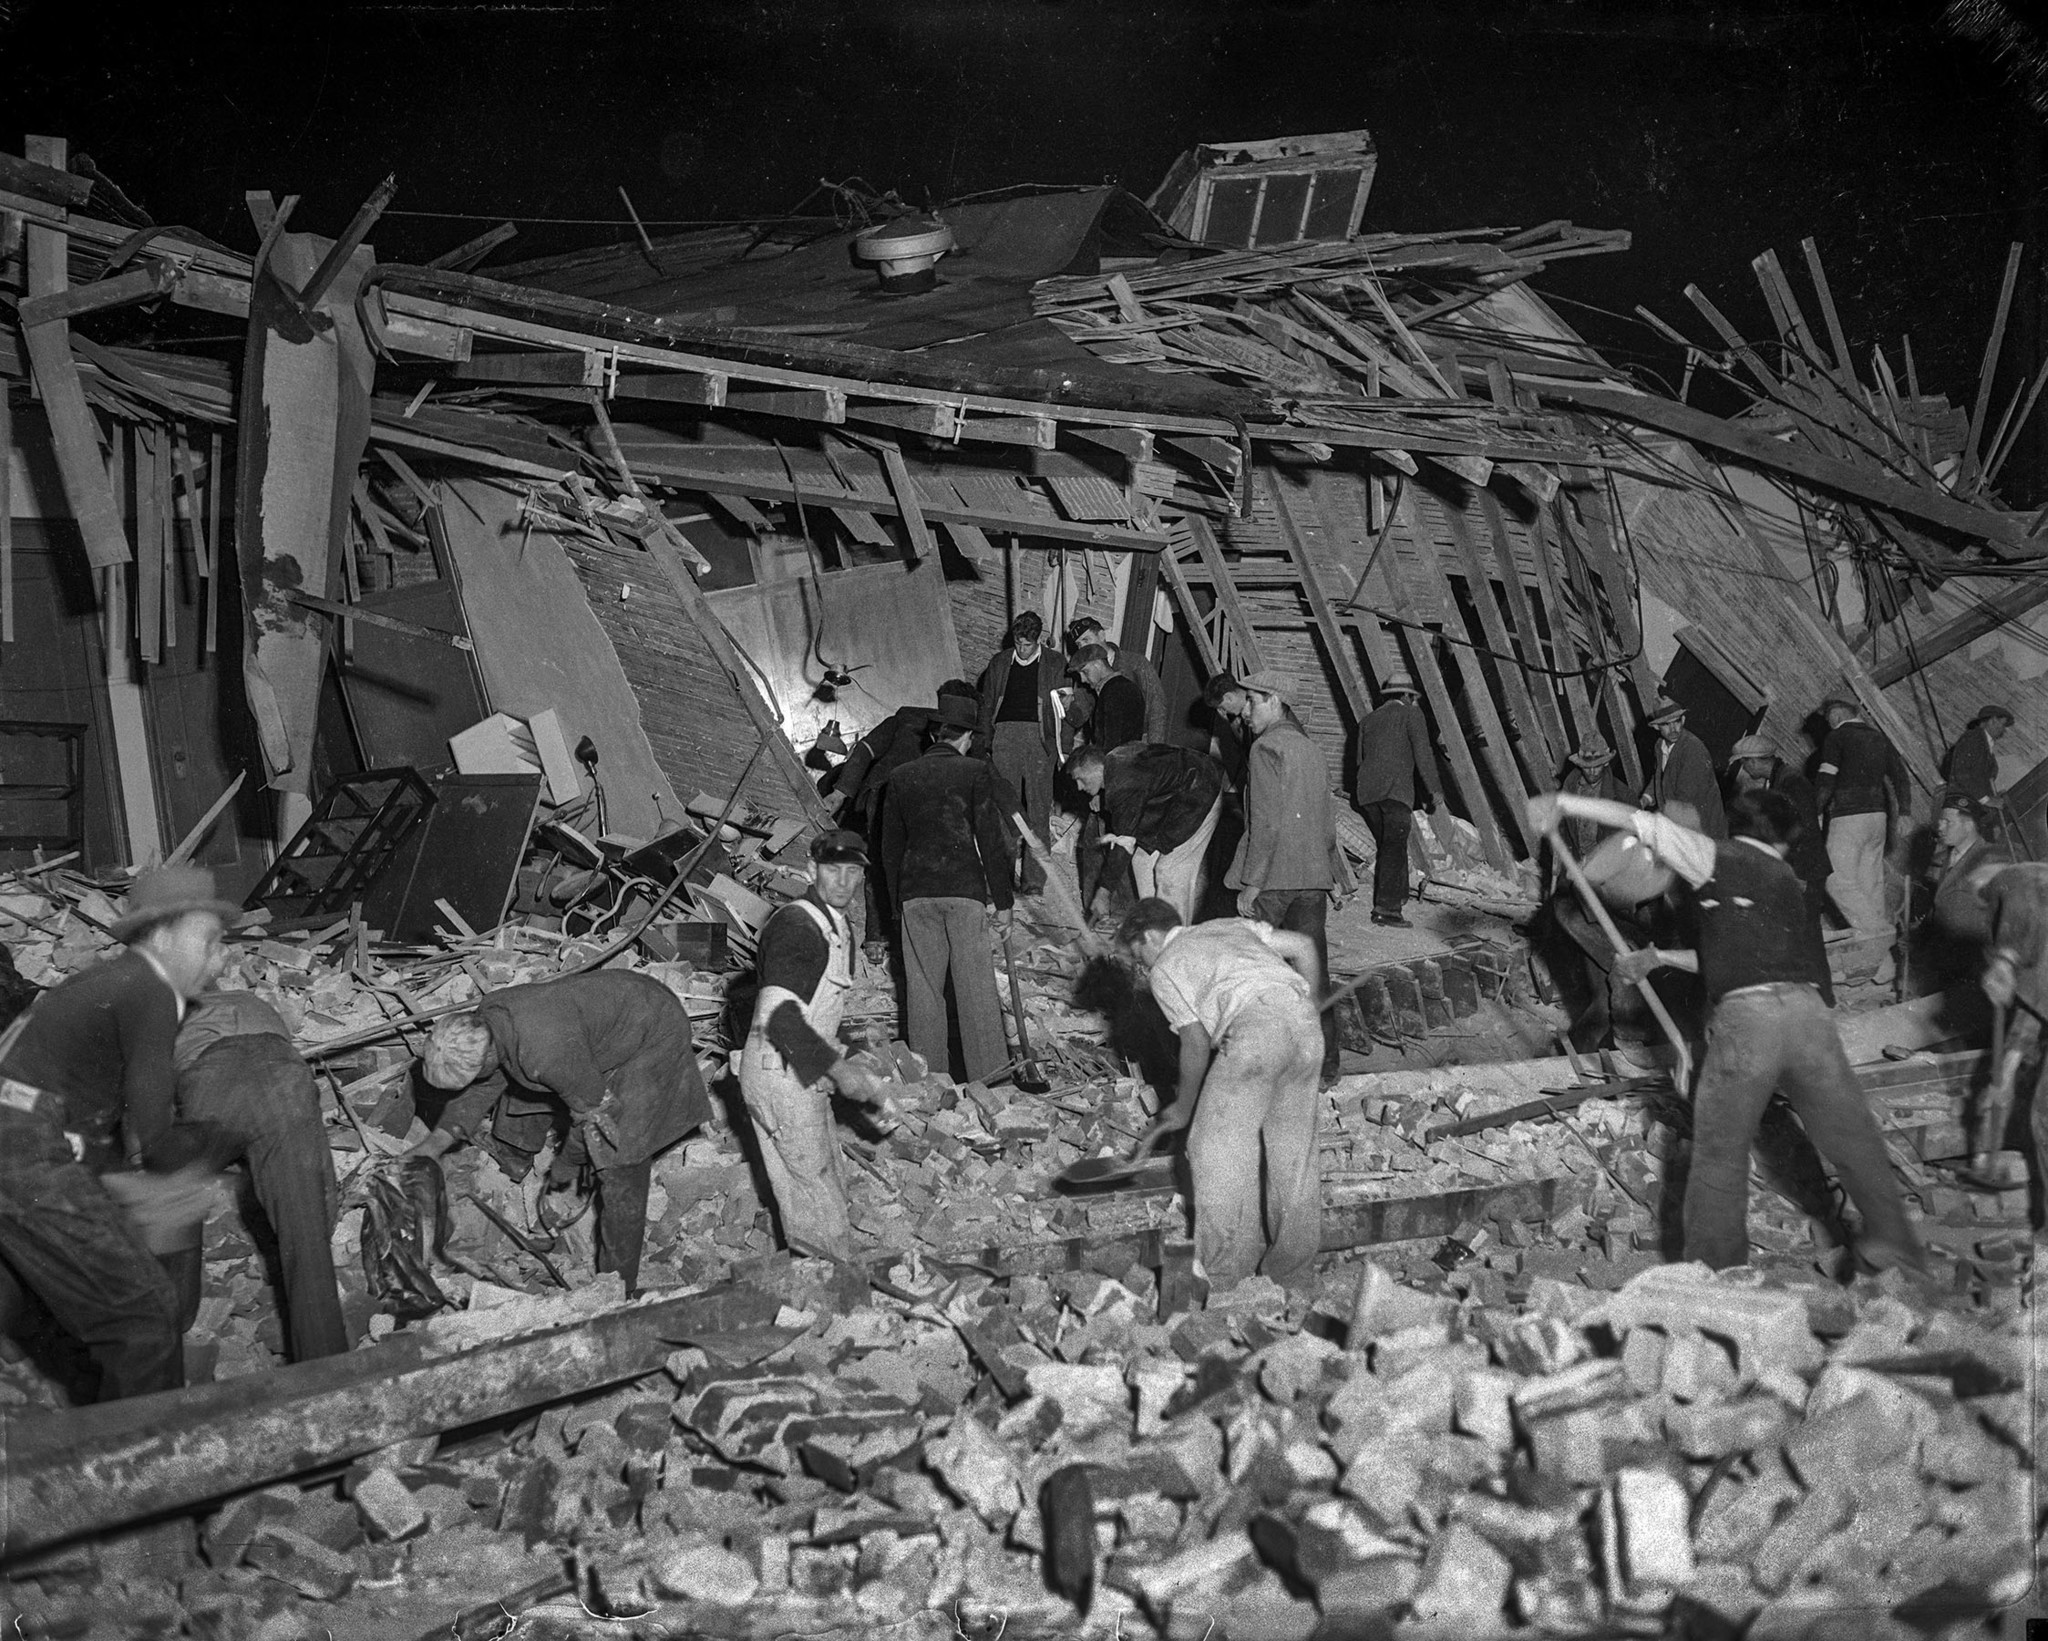 Workers going through the rubble of a ruined building after the March 10, 1933, Long Beach earthquak